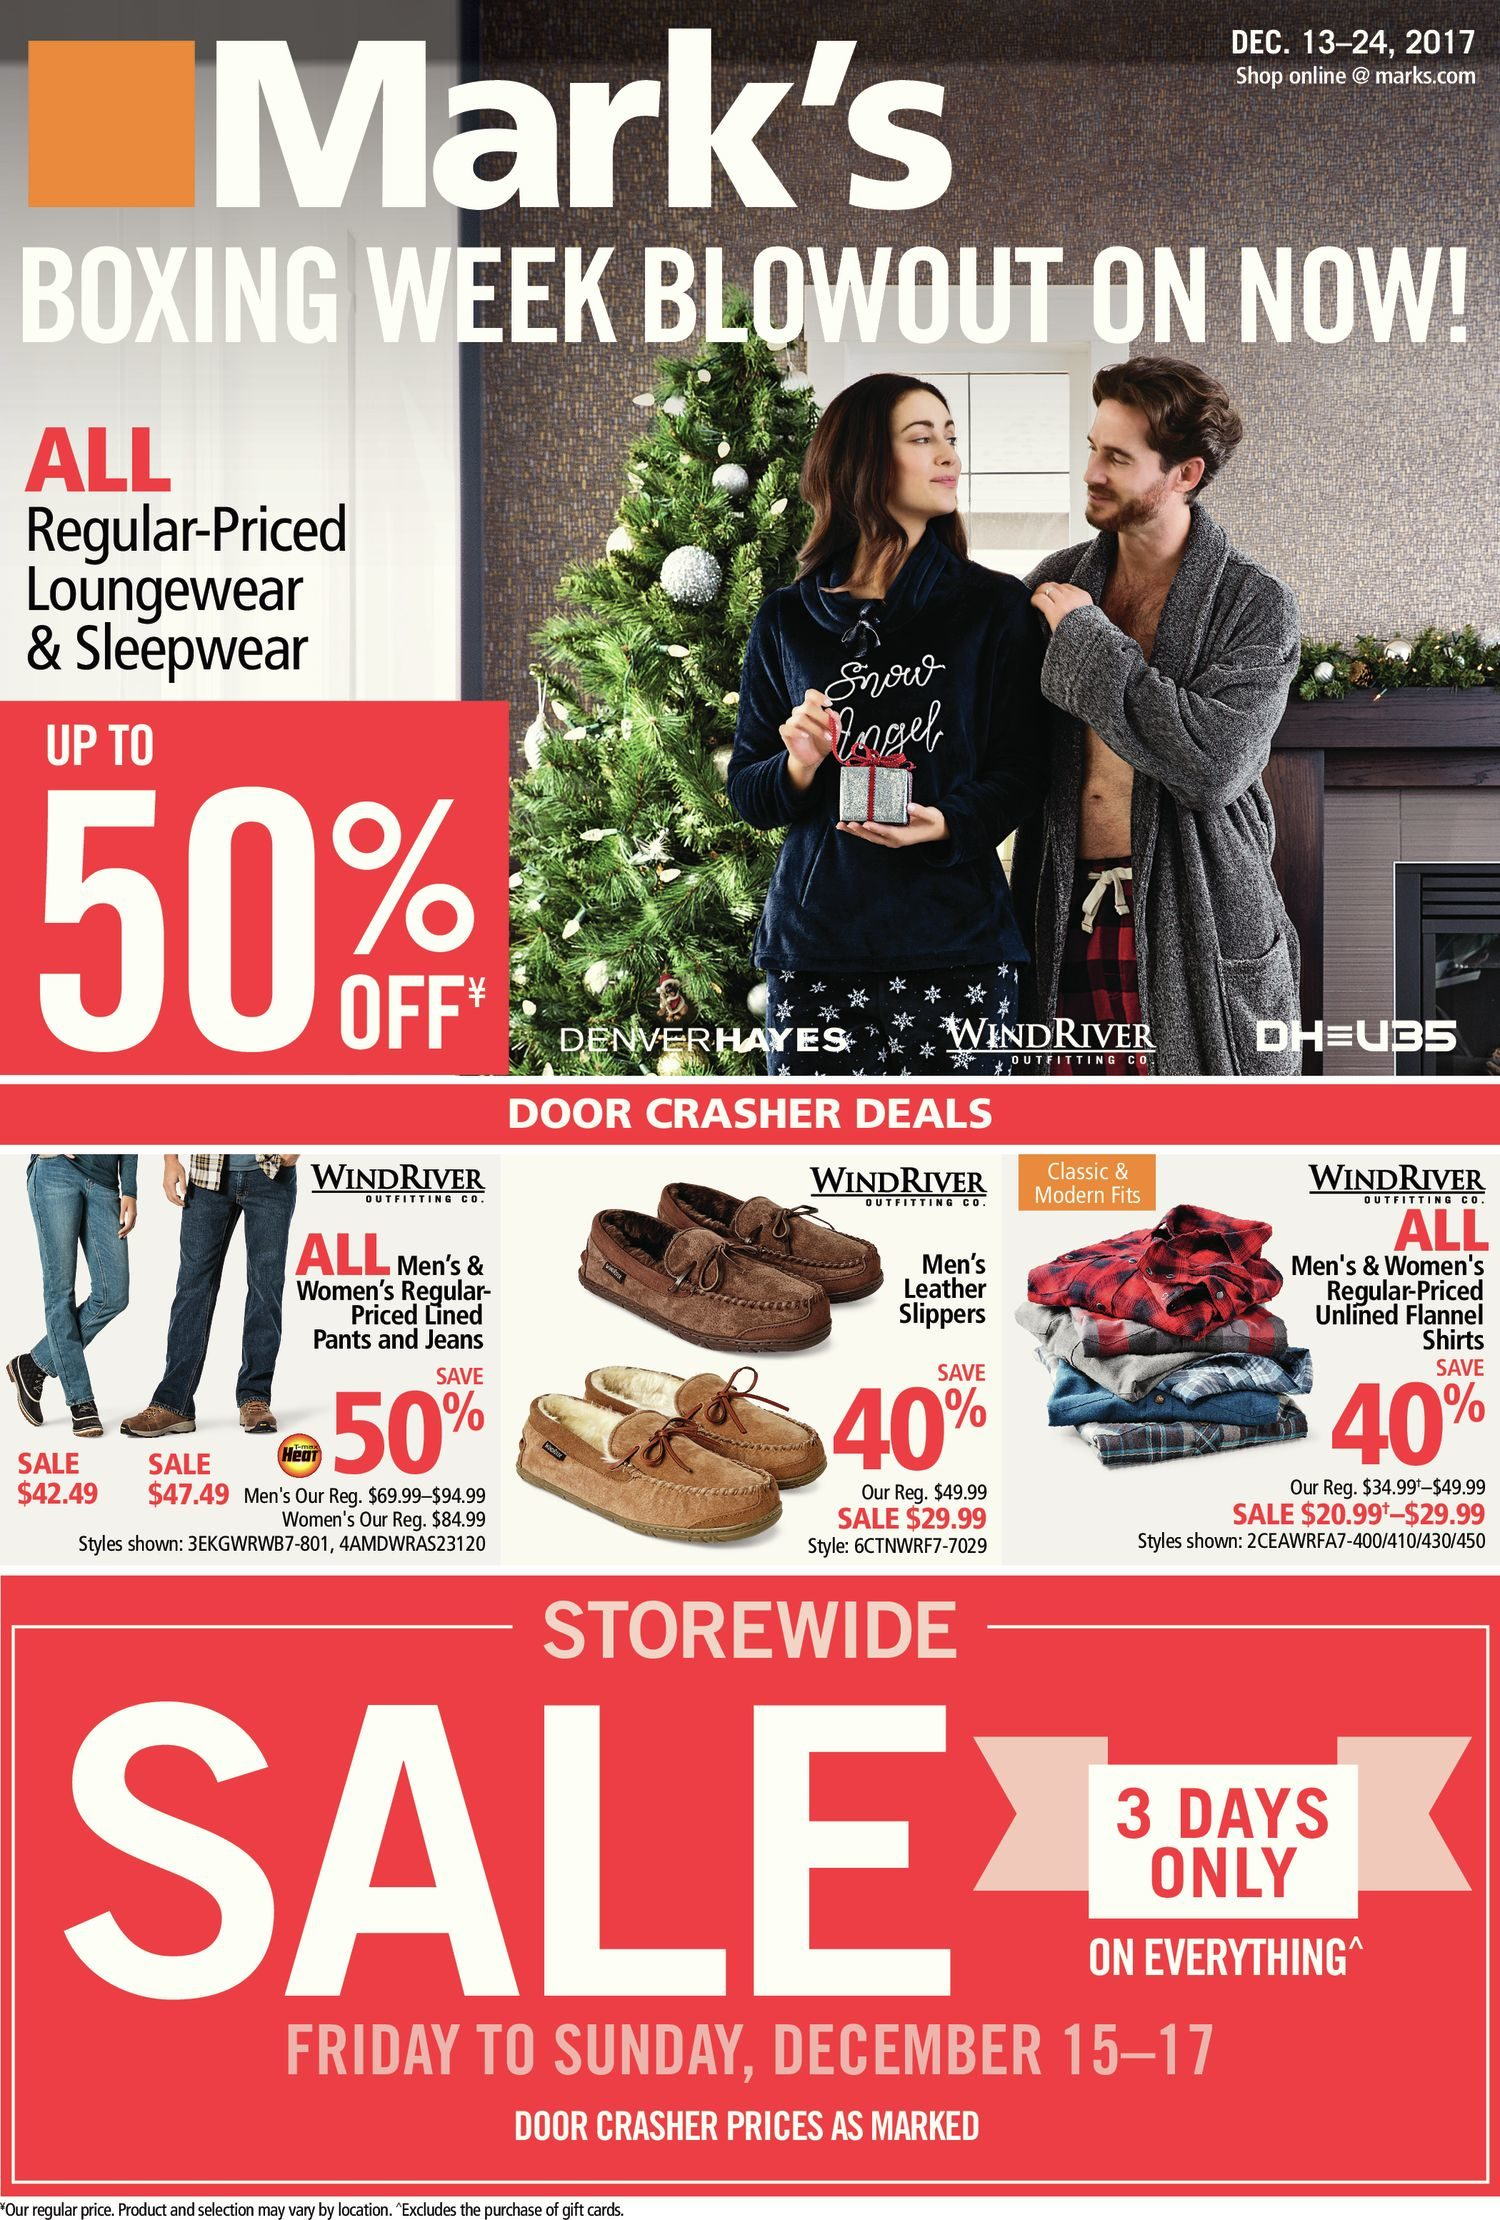 c1e3d5f88 Mark's Weekly Flyer - Boxing Week Blowout on Now! - Dec 13 – 24 ...